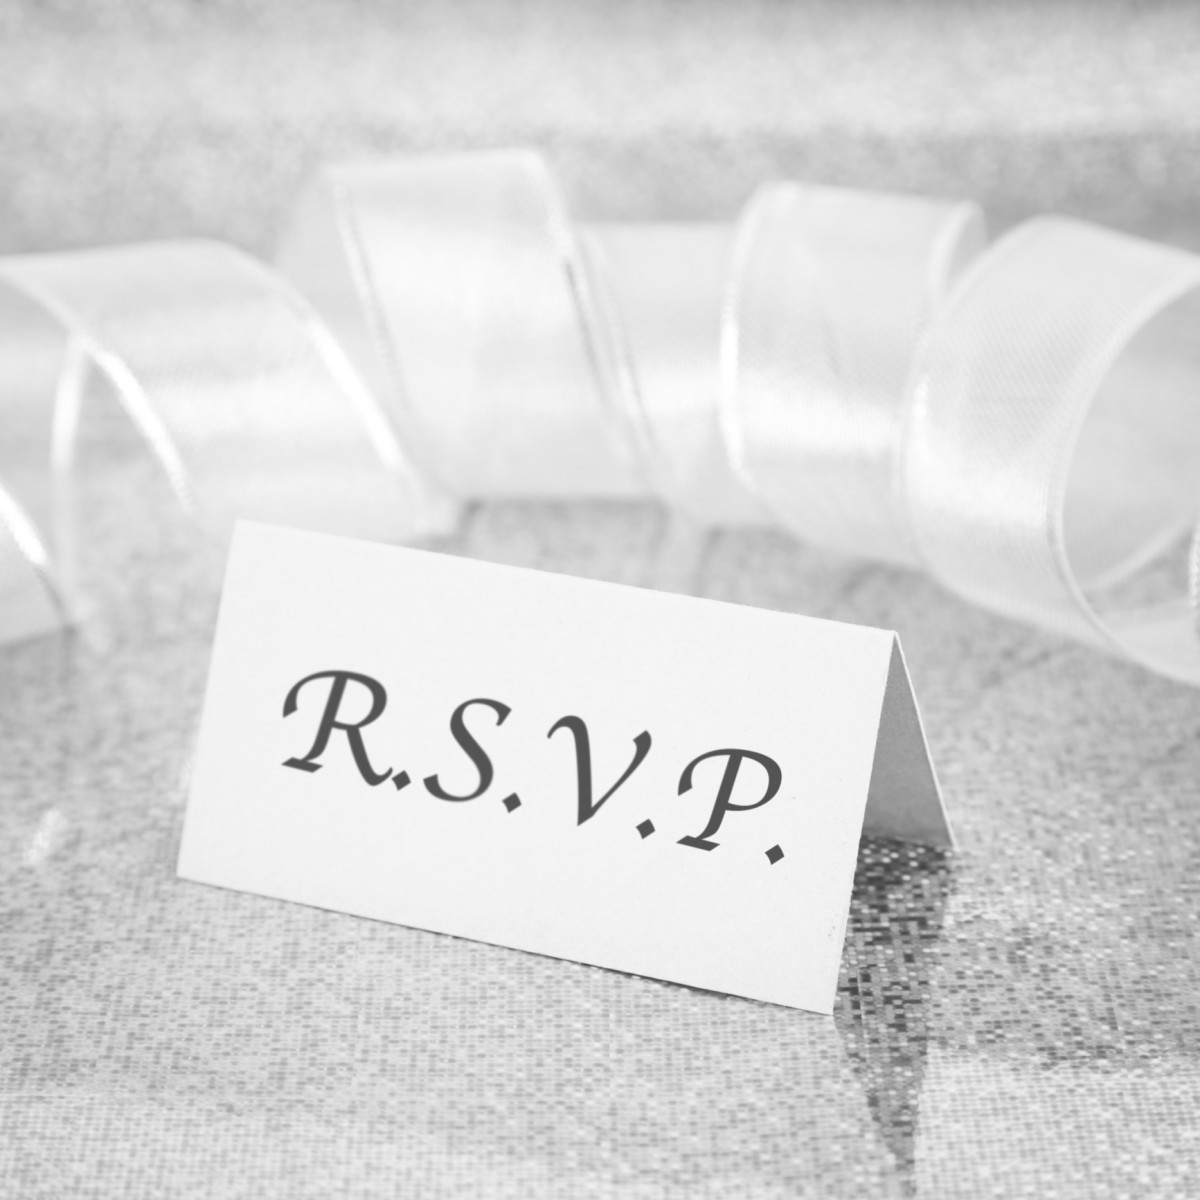 Why won't guests rsvp to my invitations?